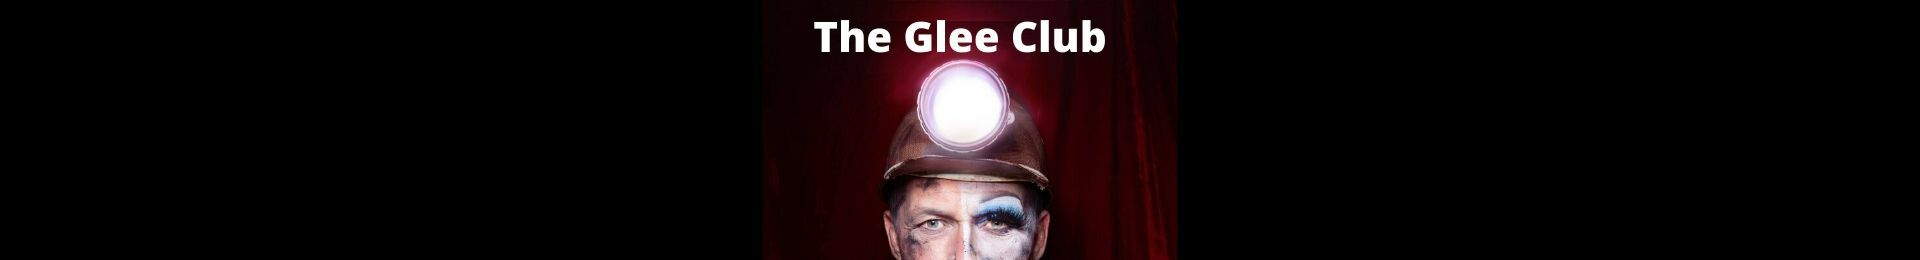 The Glee Club banner image